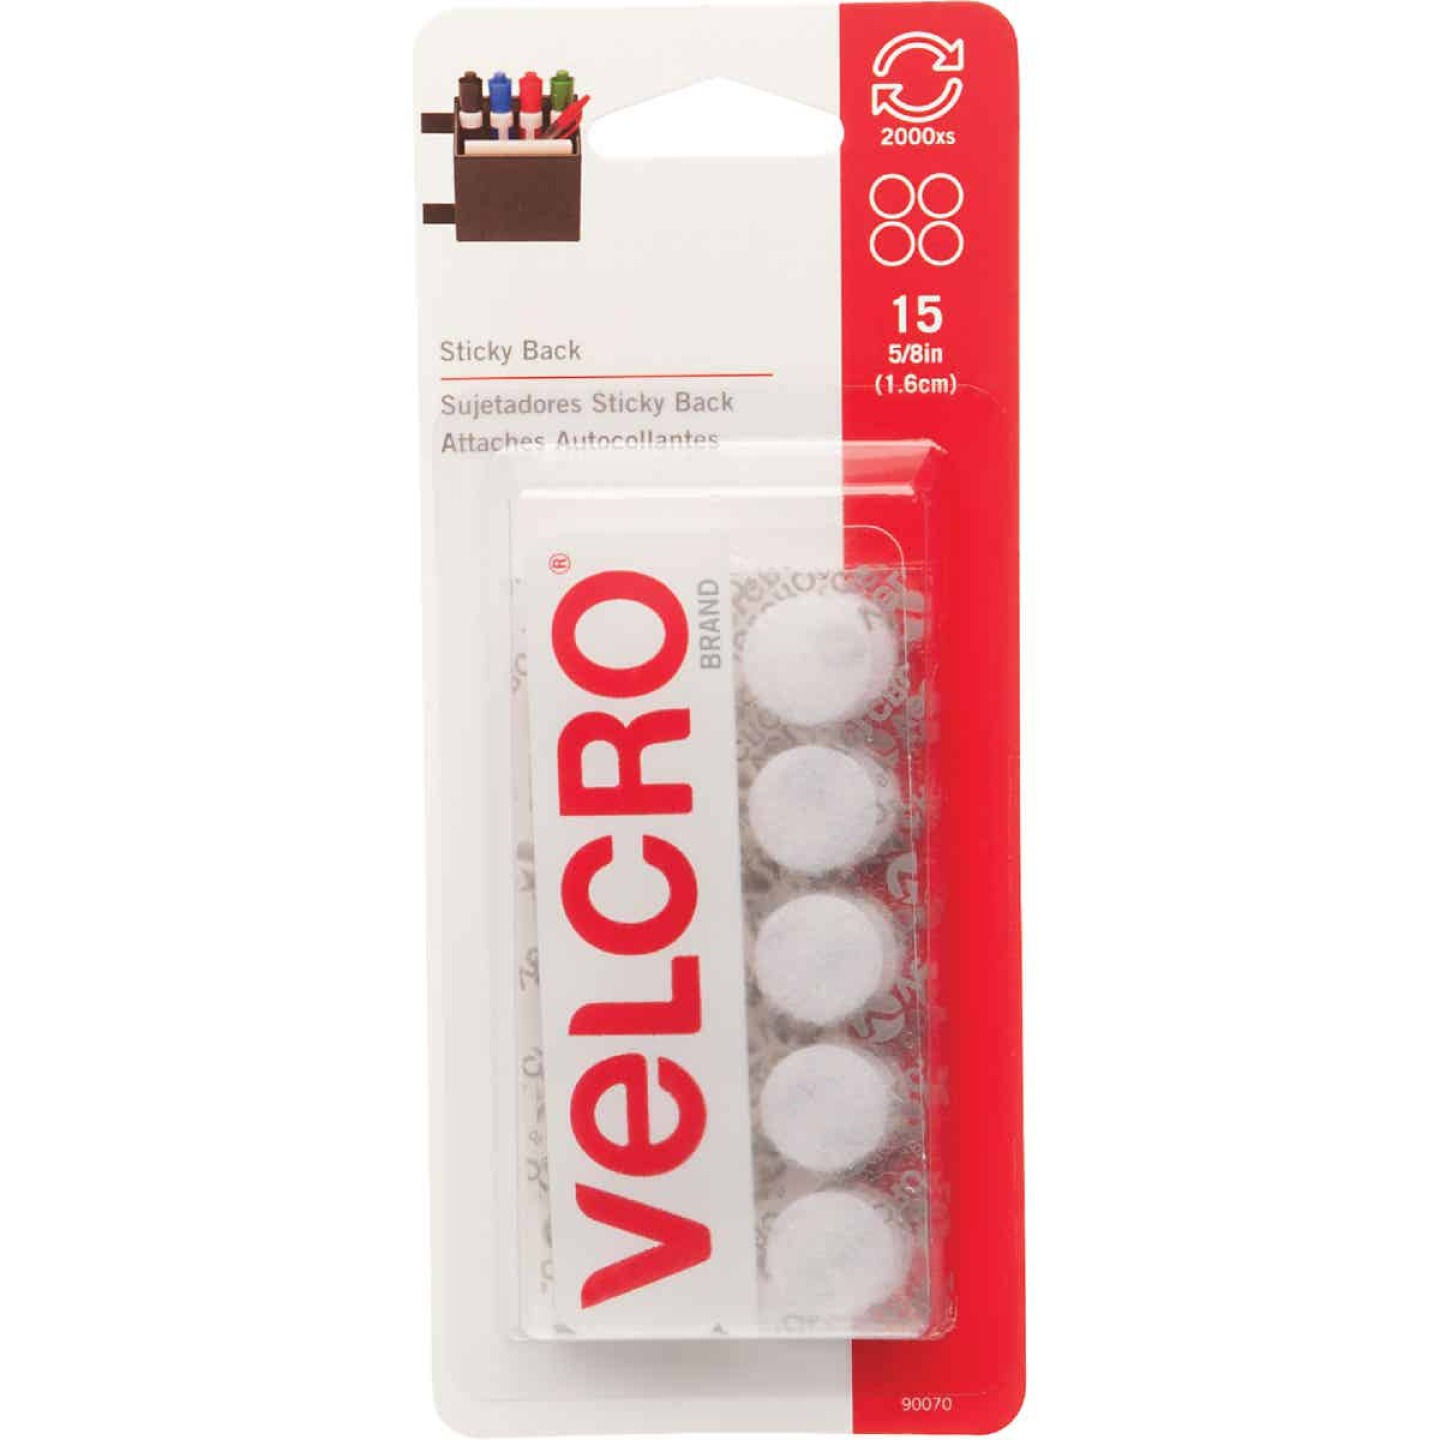 VELCRO Brand 5/8 In. White Hook & Loop Discs (15 Ct.) Image 1